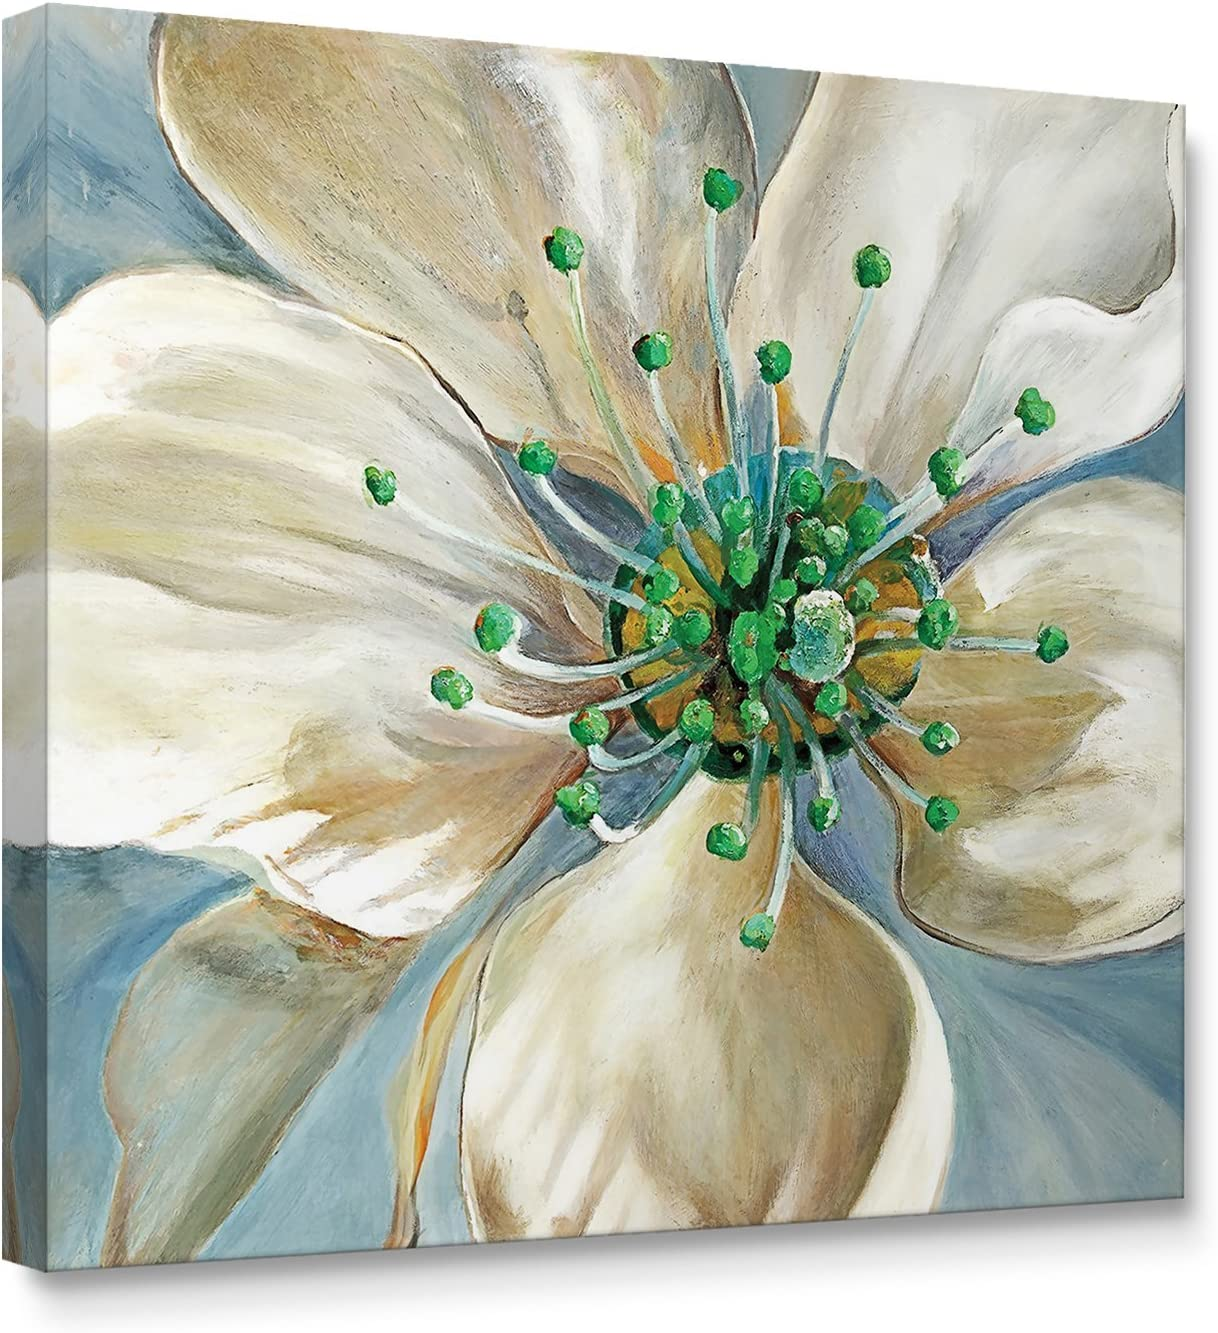 Niwo Art (TM - Magnolia Flower A, Floral Painting Artwork - Giclee Wall Art for Home Decor,Office or Lobby, Gallery Wrapped, Stretched, Framed Ready to Hang (16